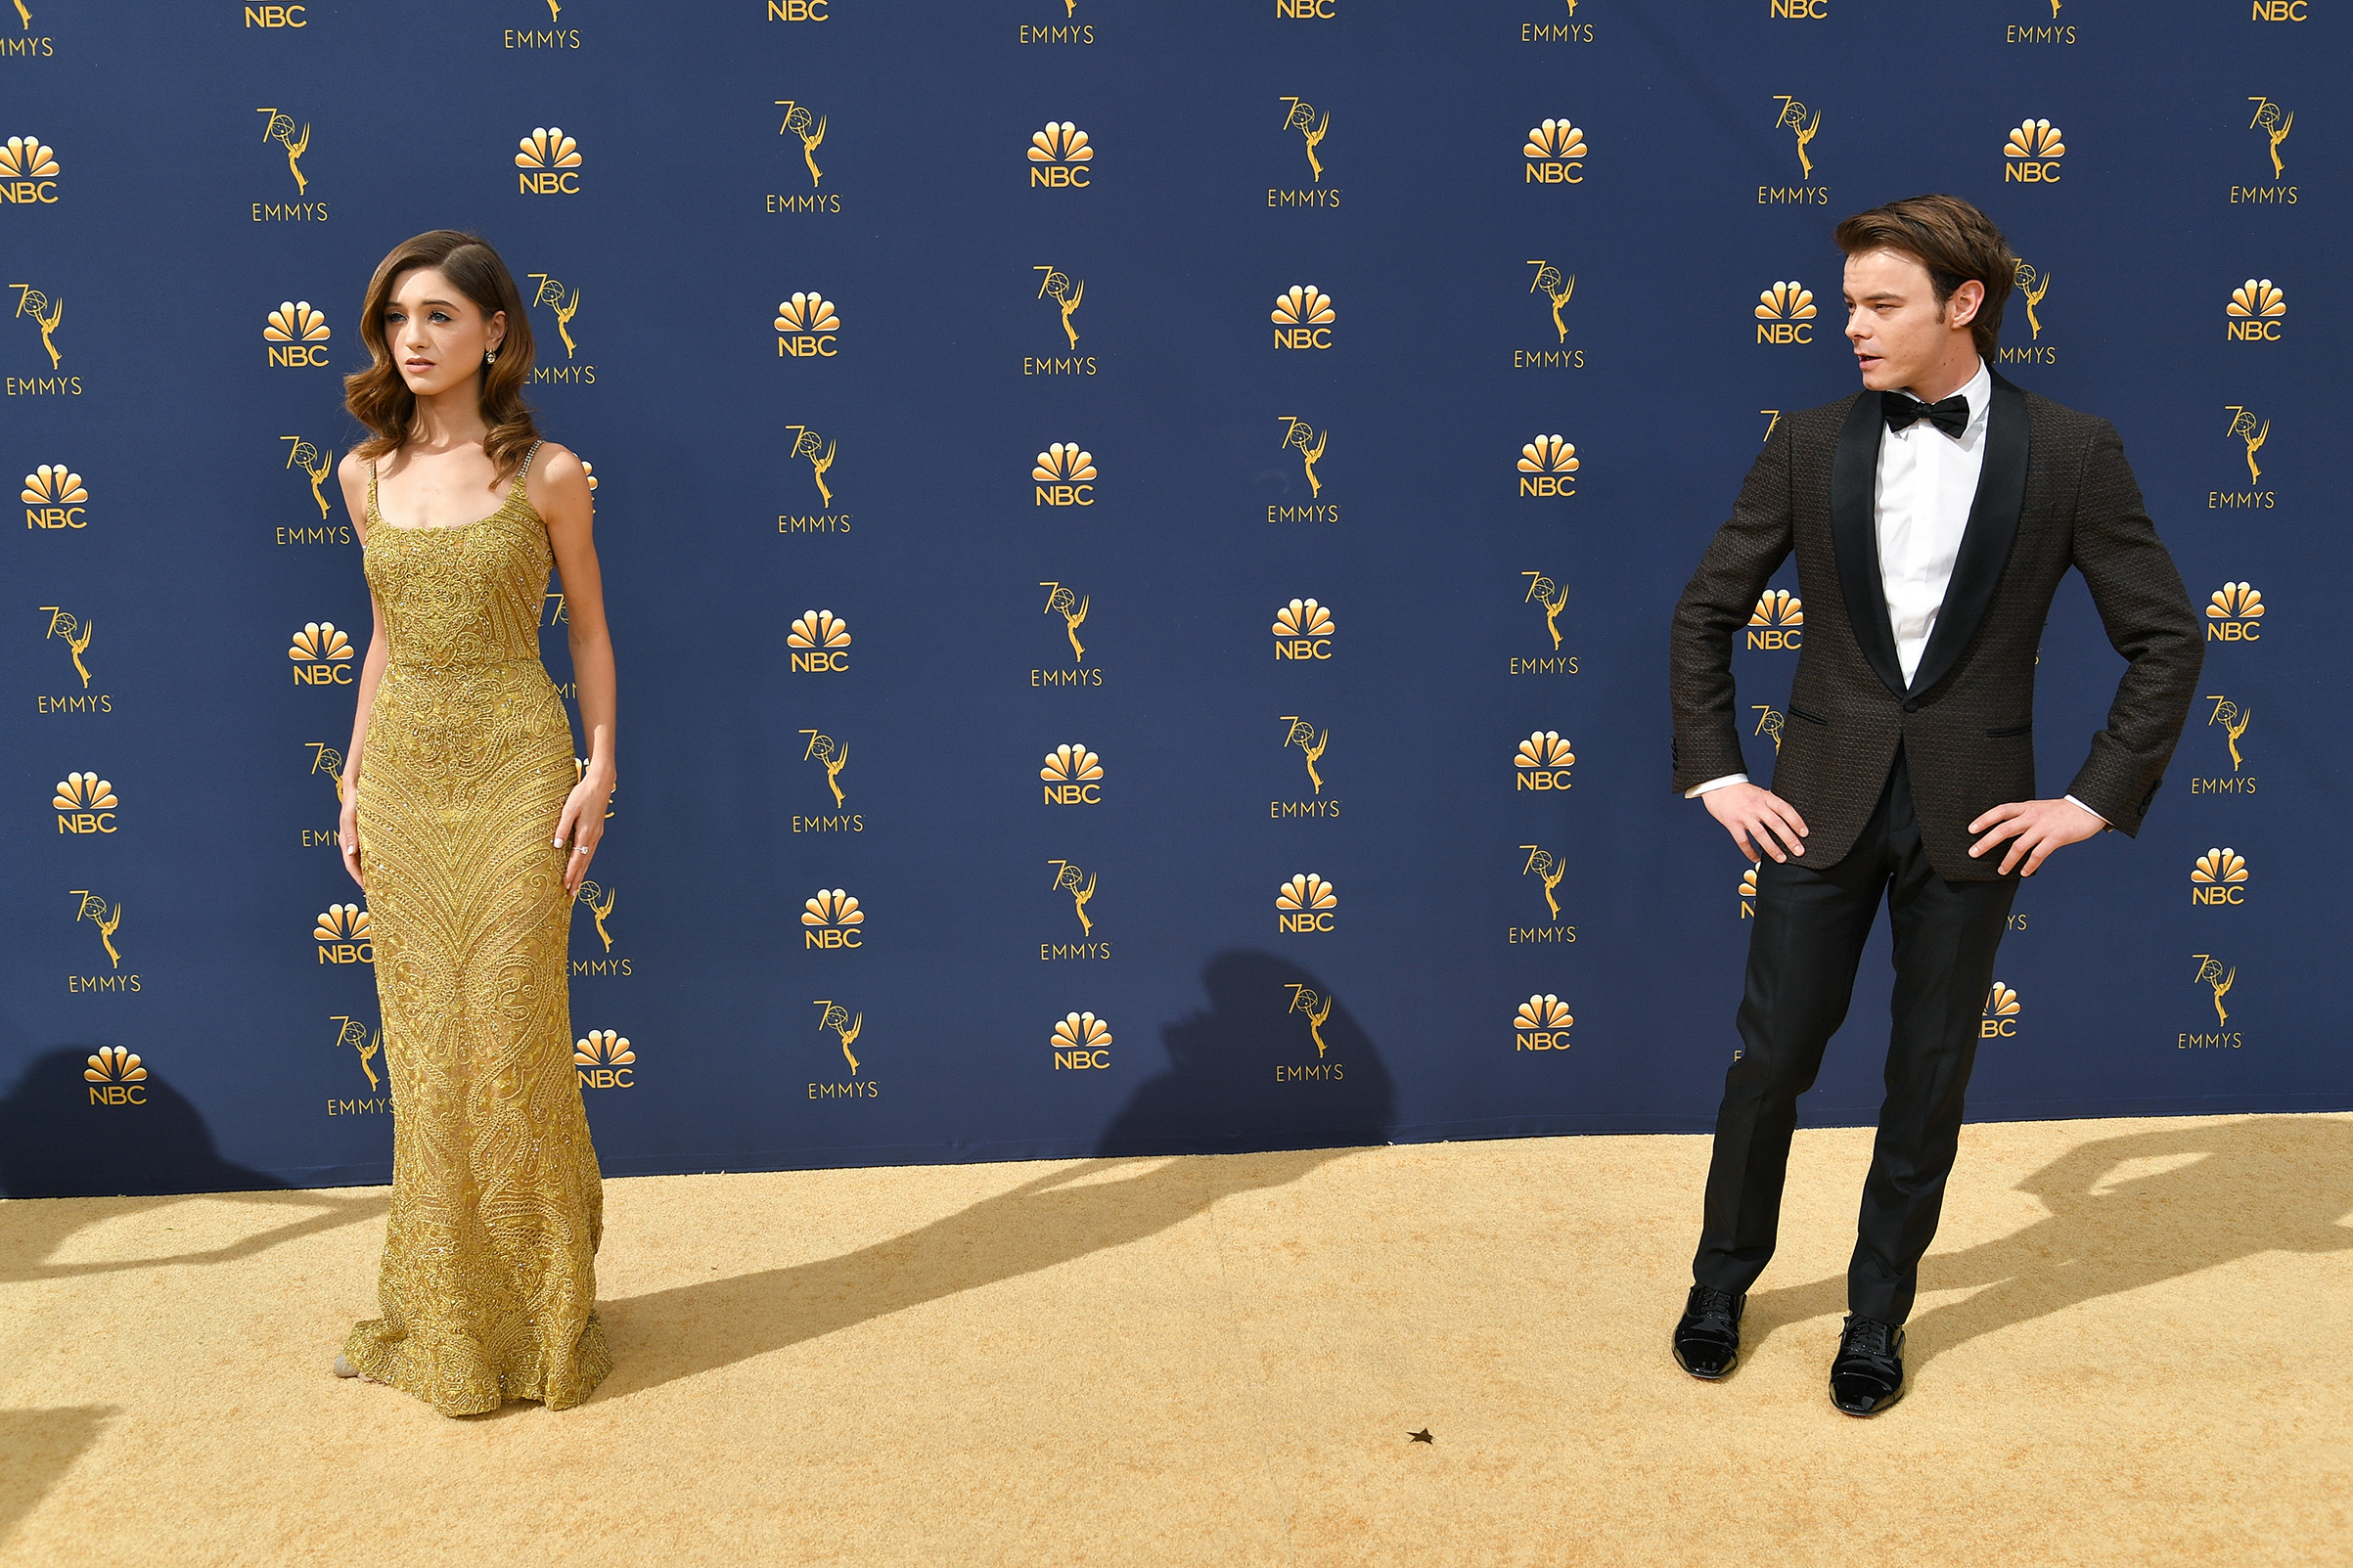 Natalia Dyer and Charlie Heaton at the 70th Primetime Emmy Awards on Sept. 17.